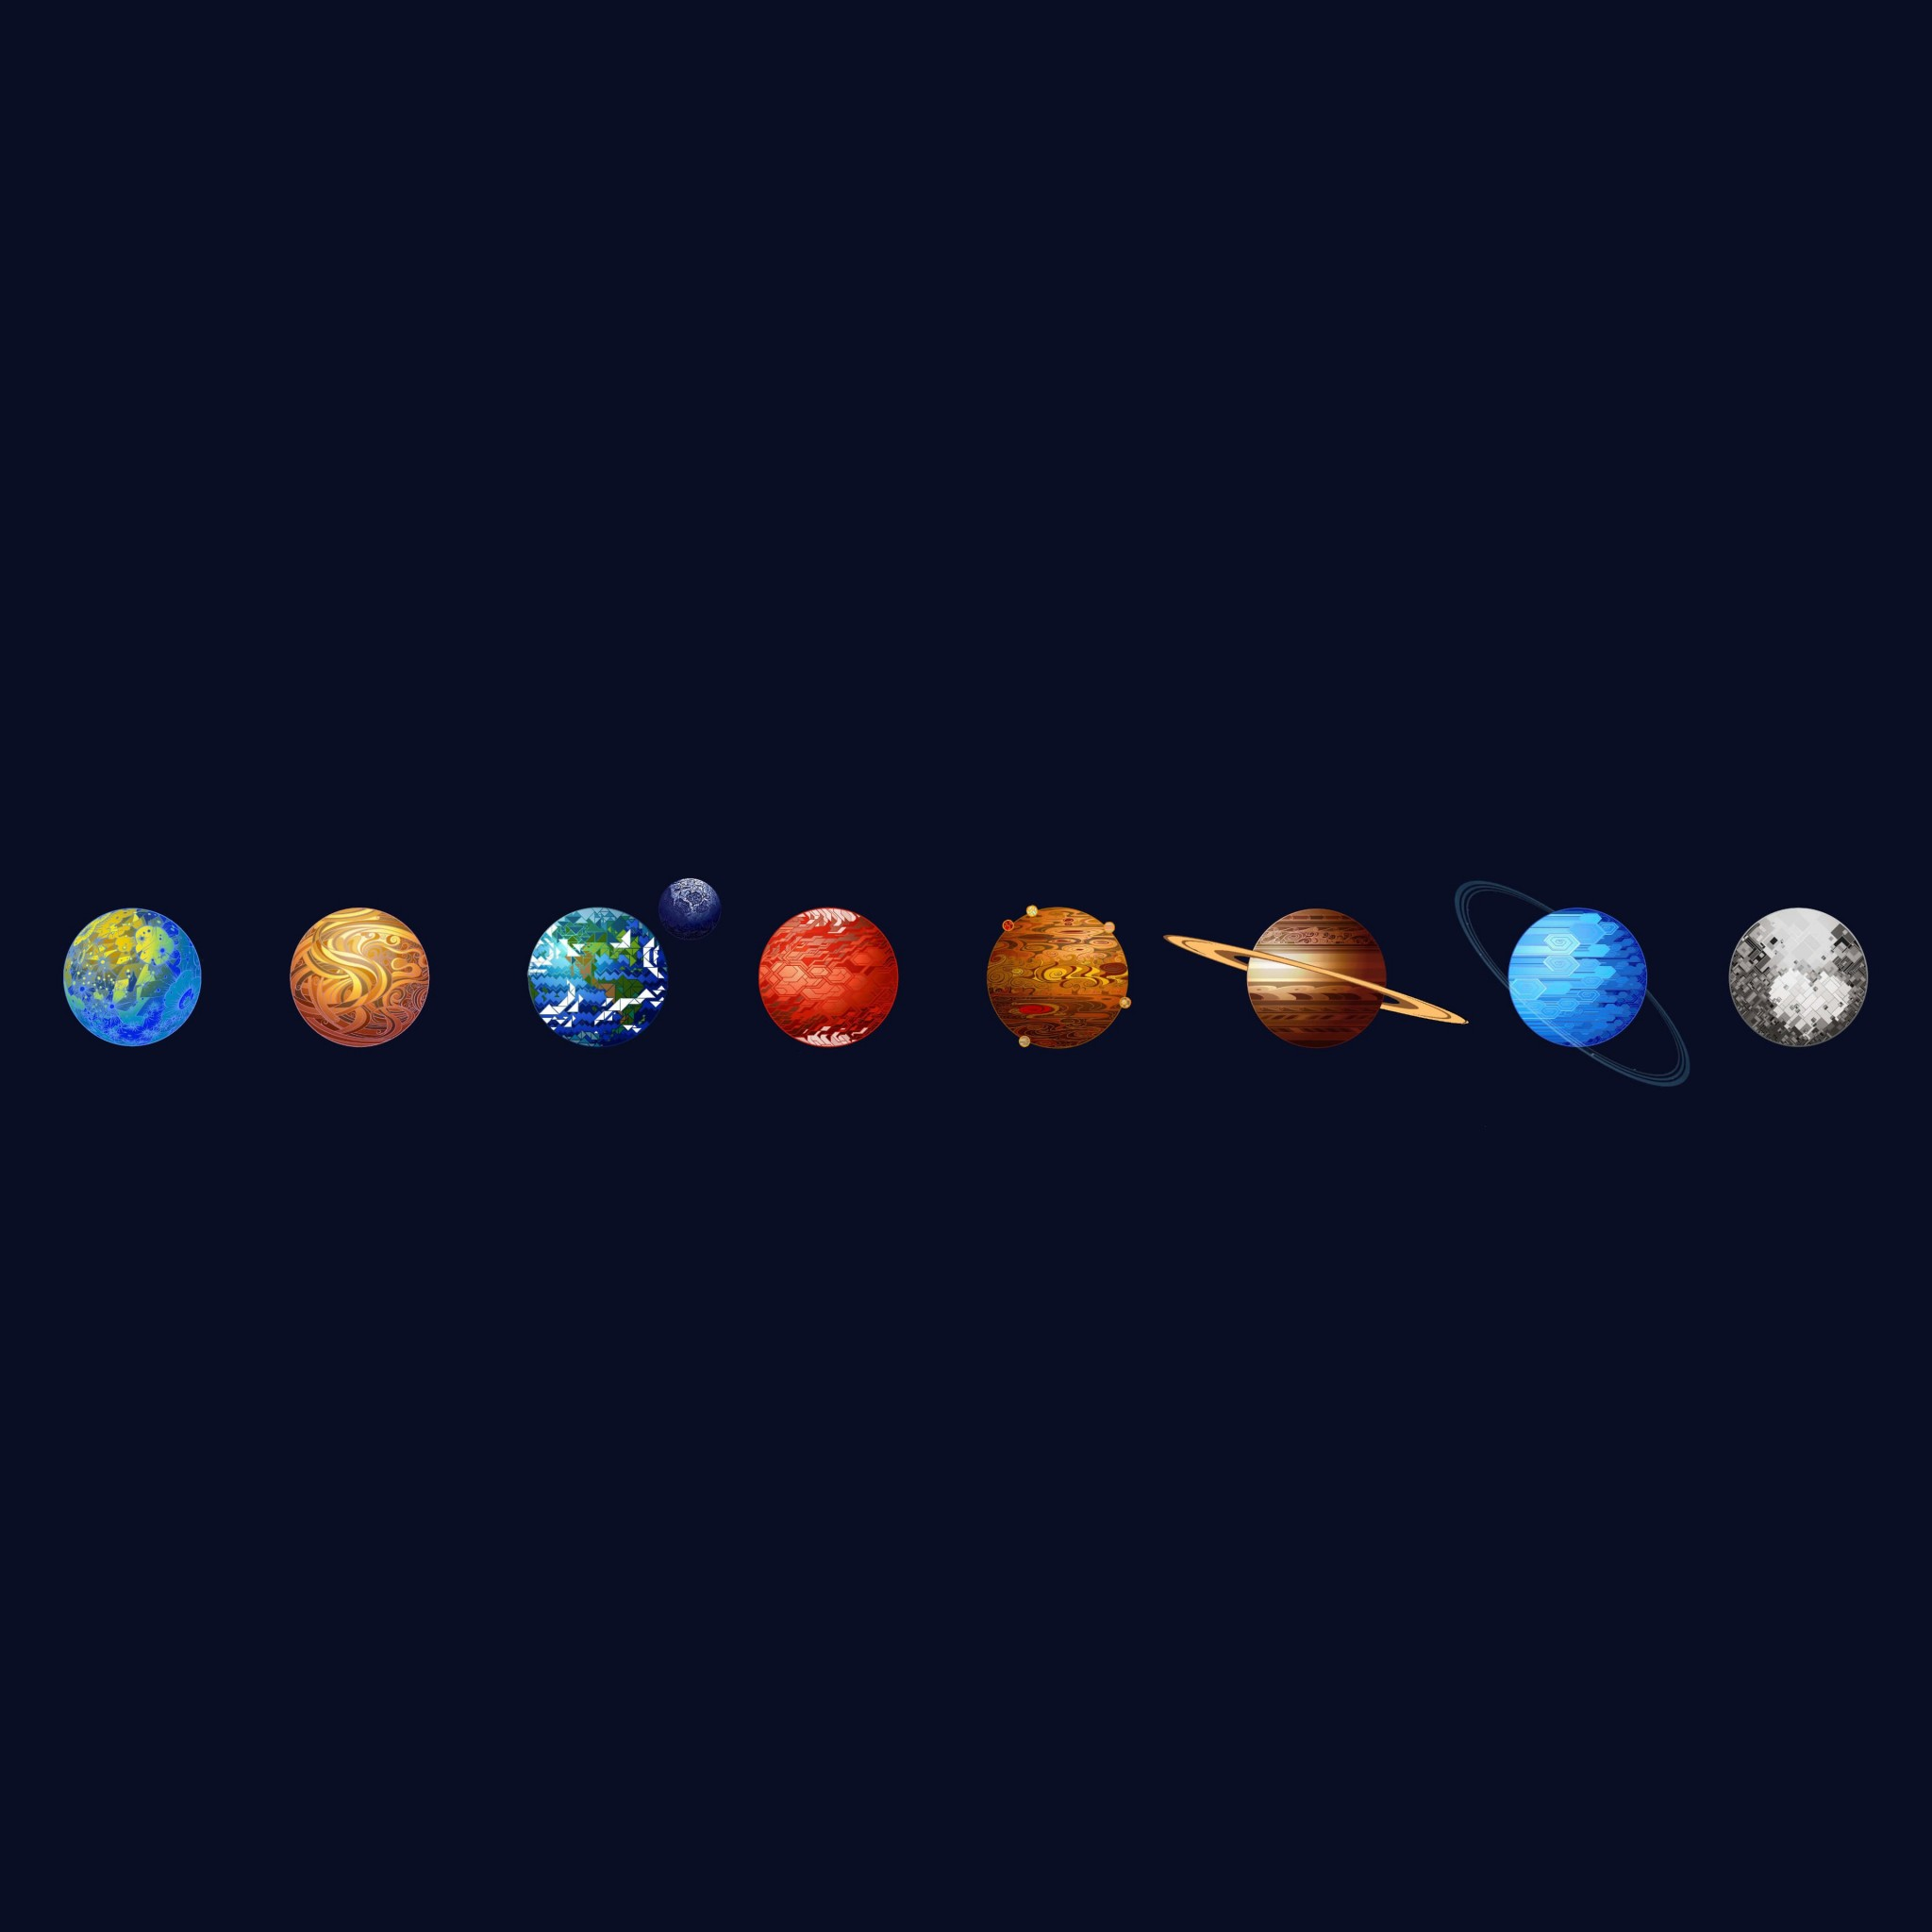 Solar System Wallpaper for Google Nexus 9